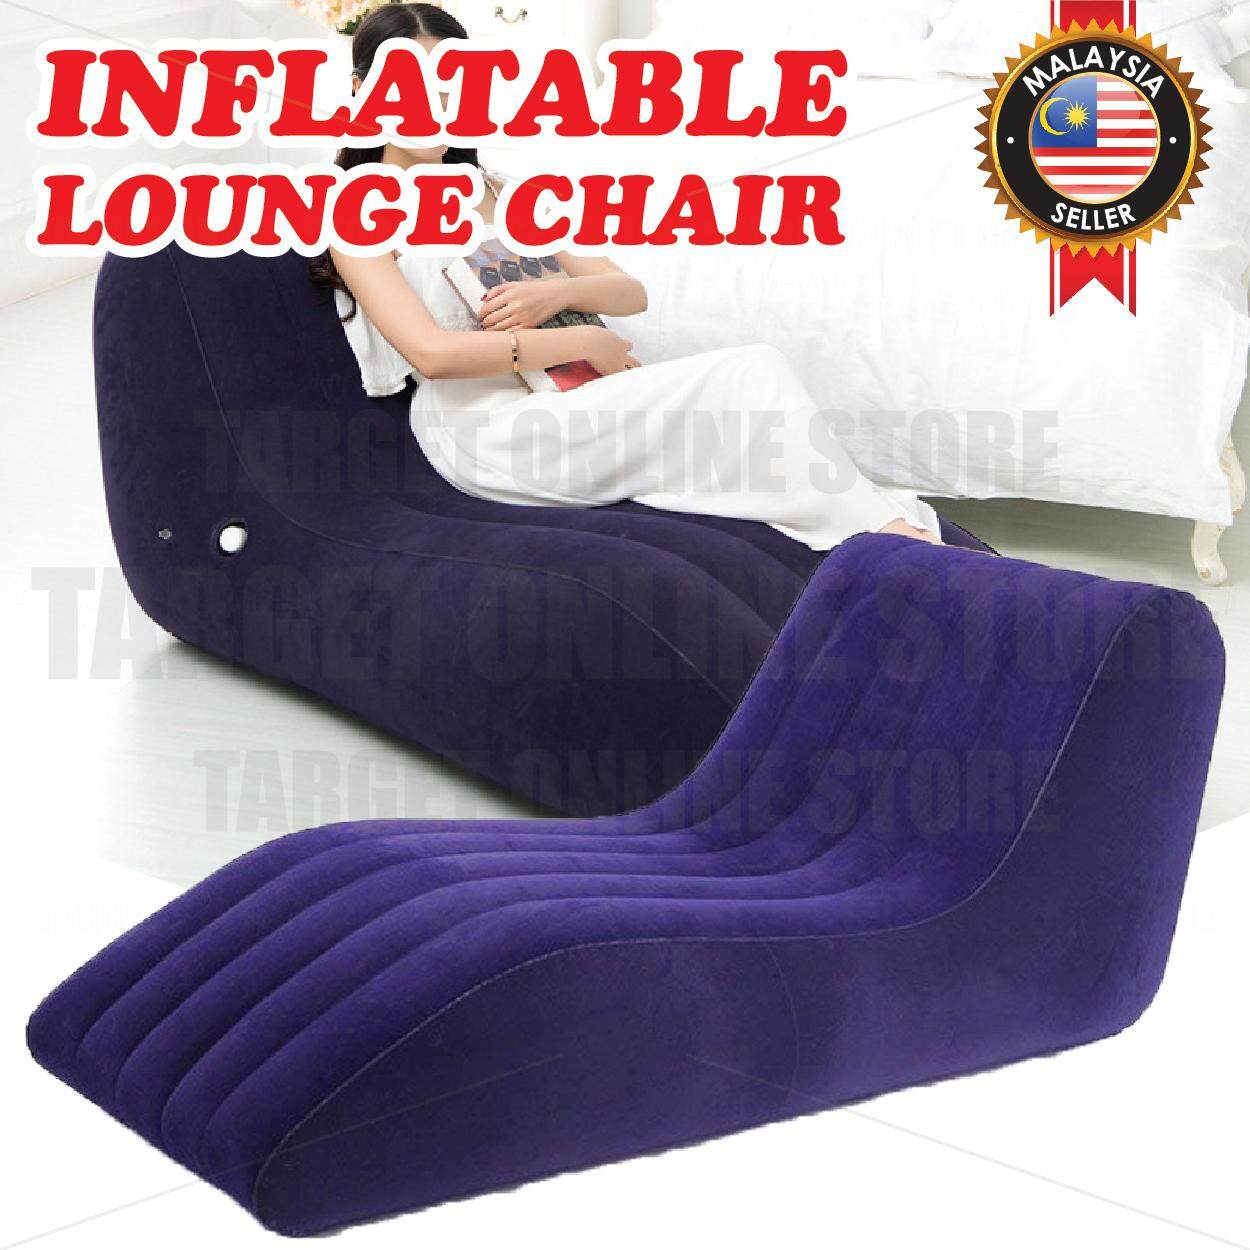 Sofa Bed Giant Malaysia Inflatable Lounge Chair Cushion Air Blow Up Comfortable Relaxs Flocked